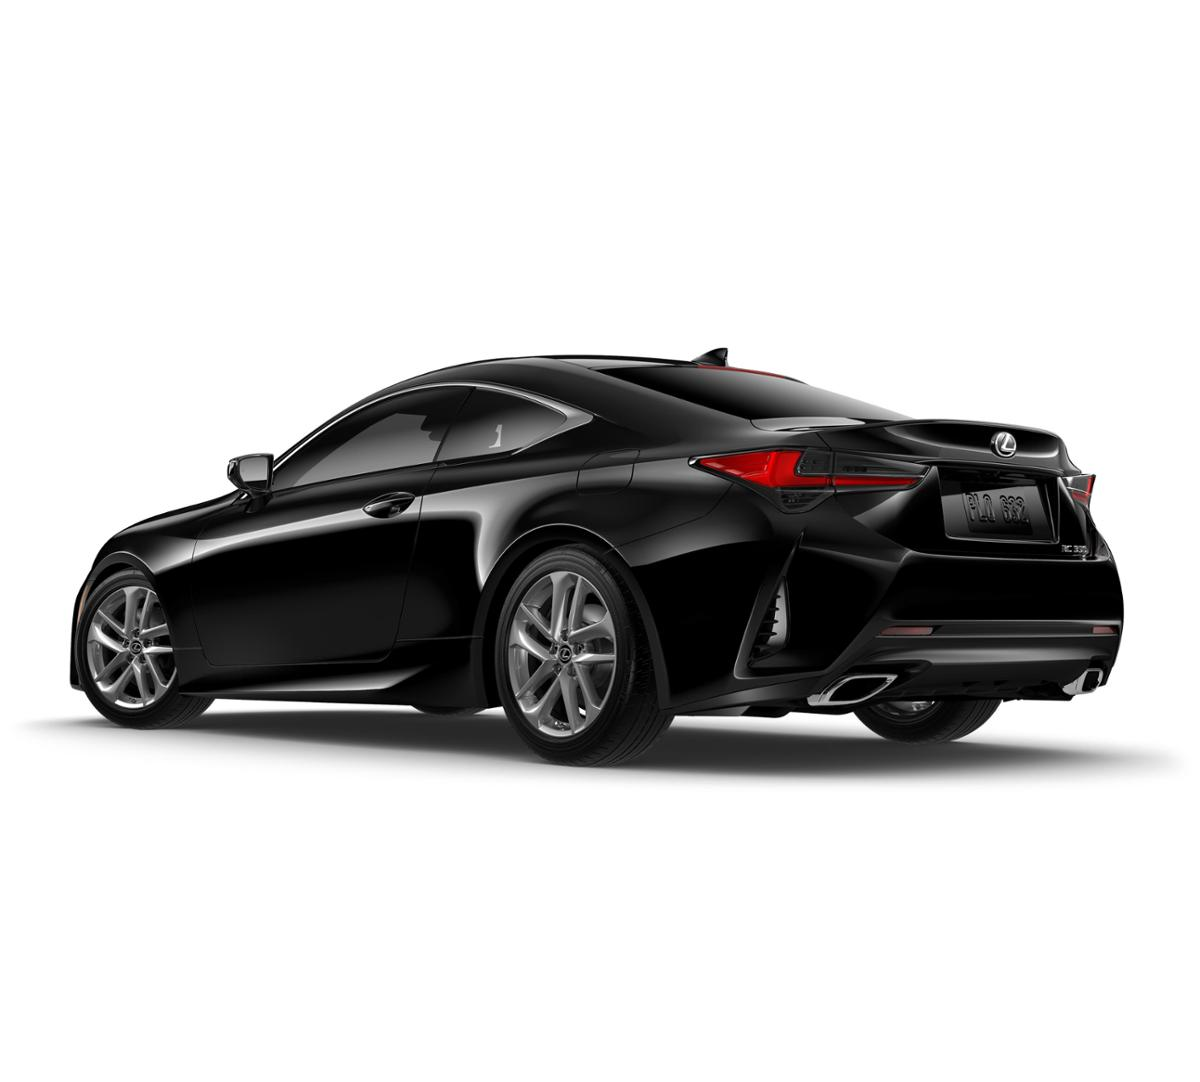 Lexus Of Memphis Used Cars: 2019 Lexus RC 350